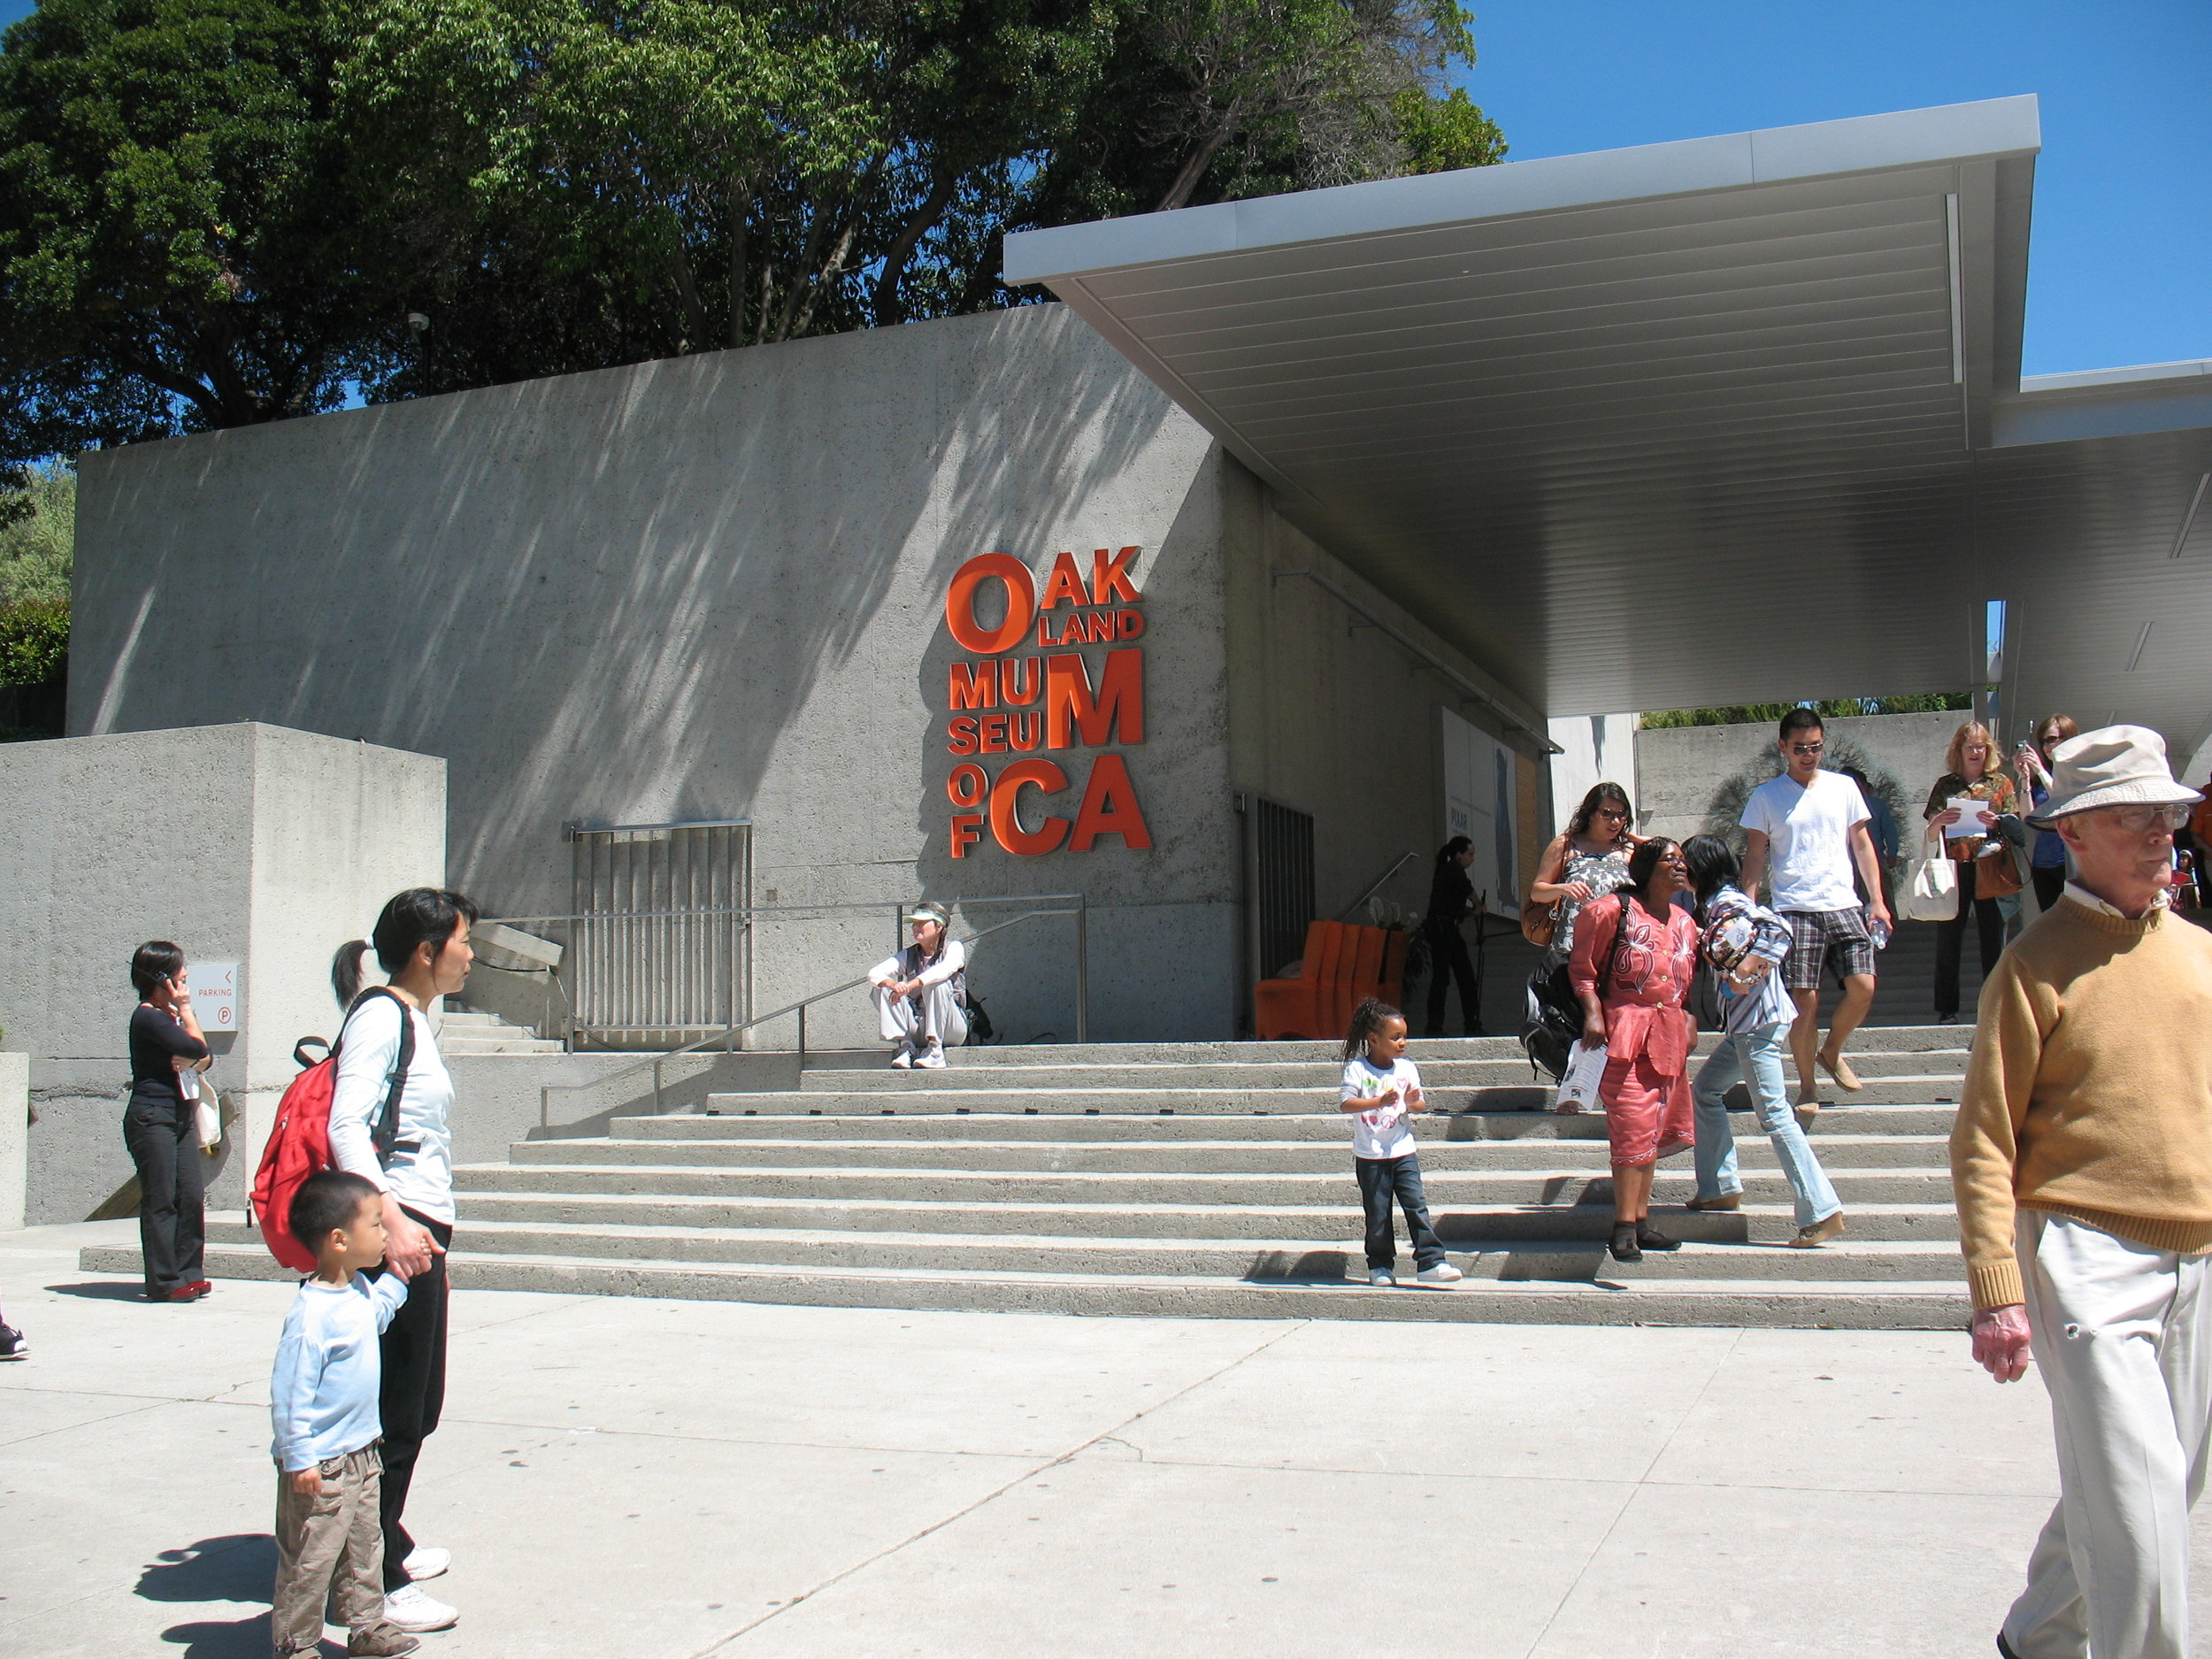 Oakland Museum of California, 2011.  Courtesy of Oakland Museum of California. Photo: Brad Thomas.